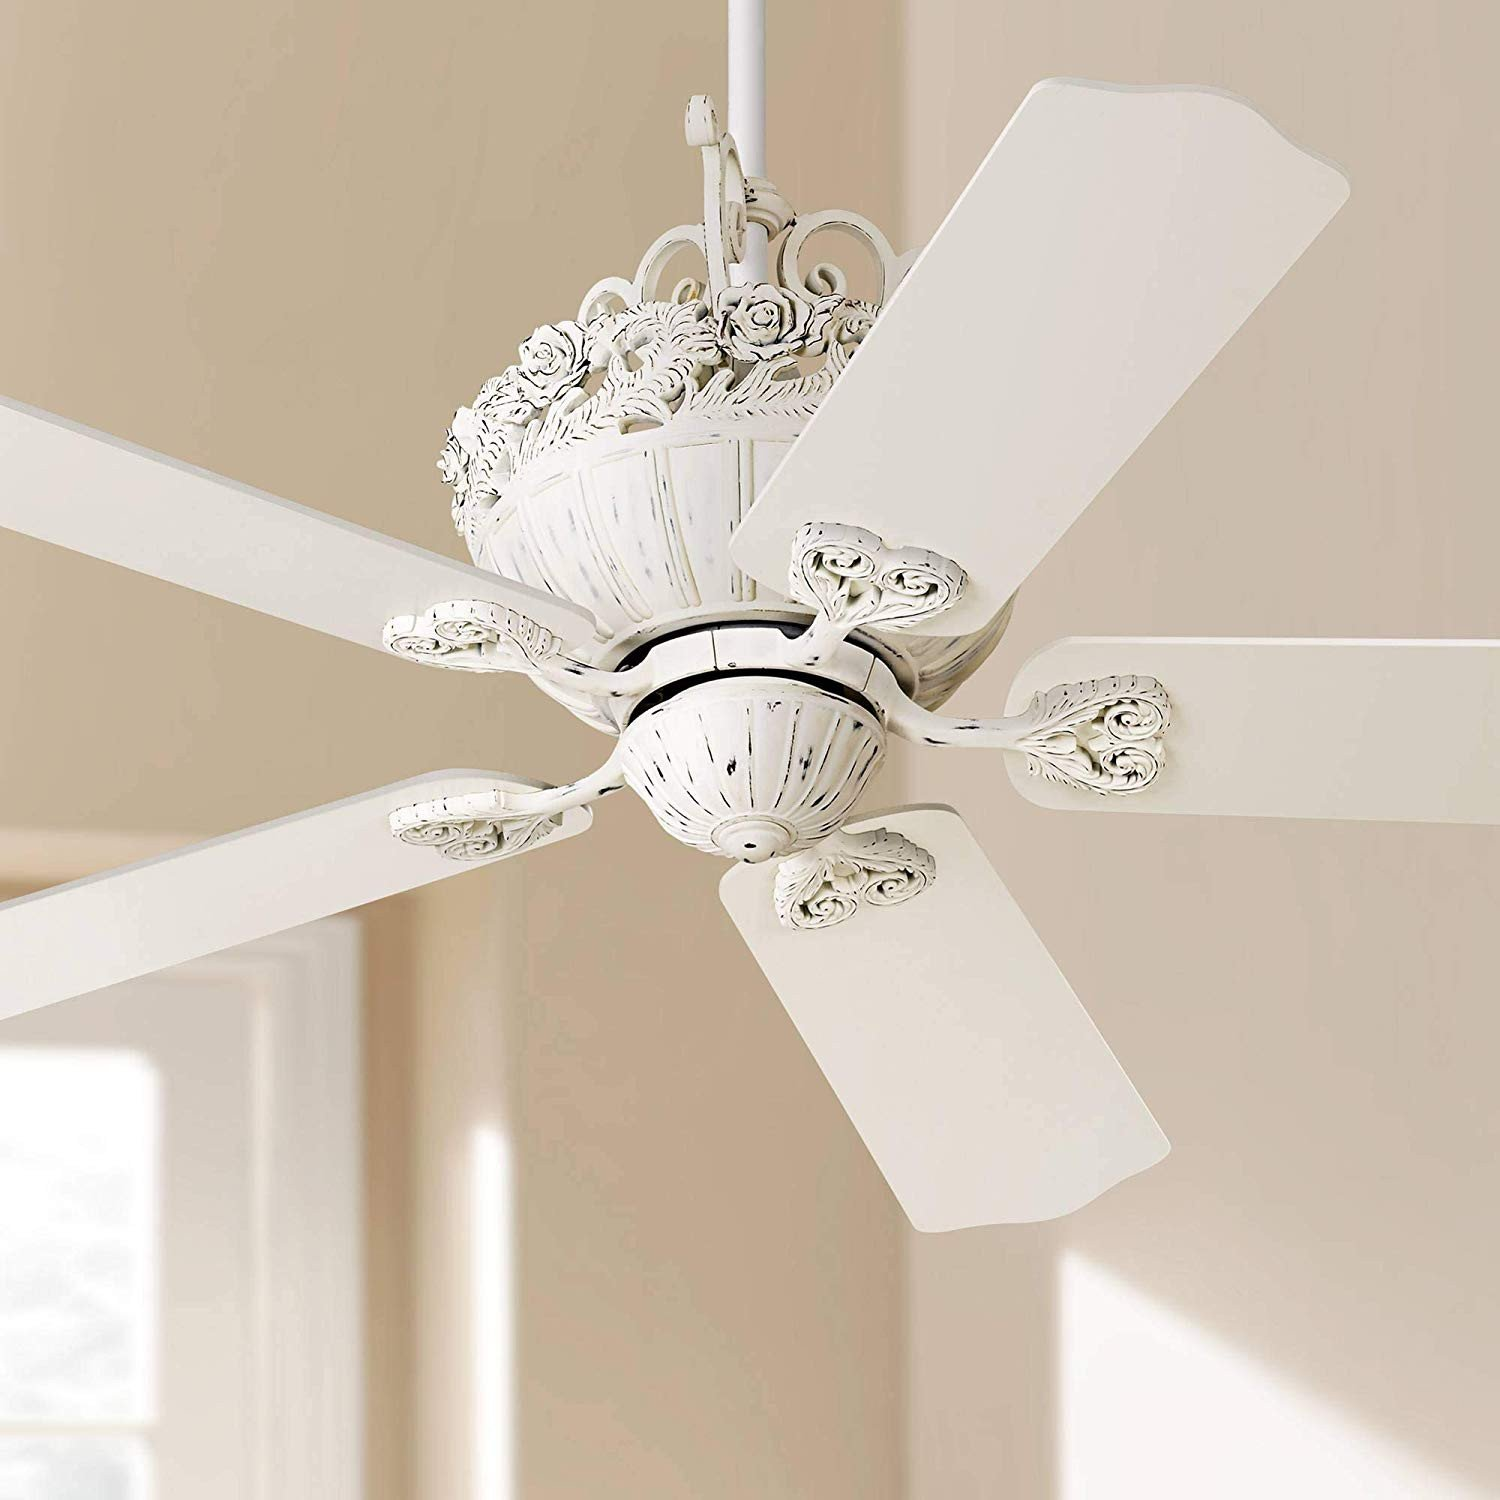 "Bedroom Ceiling Fans with Light New 52"" Casa Shabby Chic Ceiling Fan Antique Floral Scroll Rubbed White for Living Room Kitchen Bedroom Family Dining Casa Vieja"